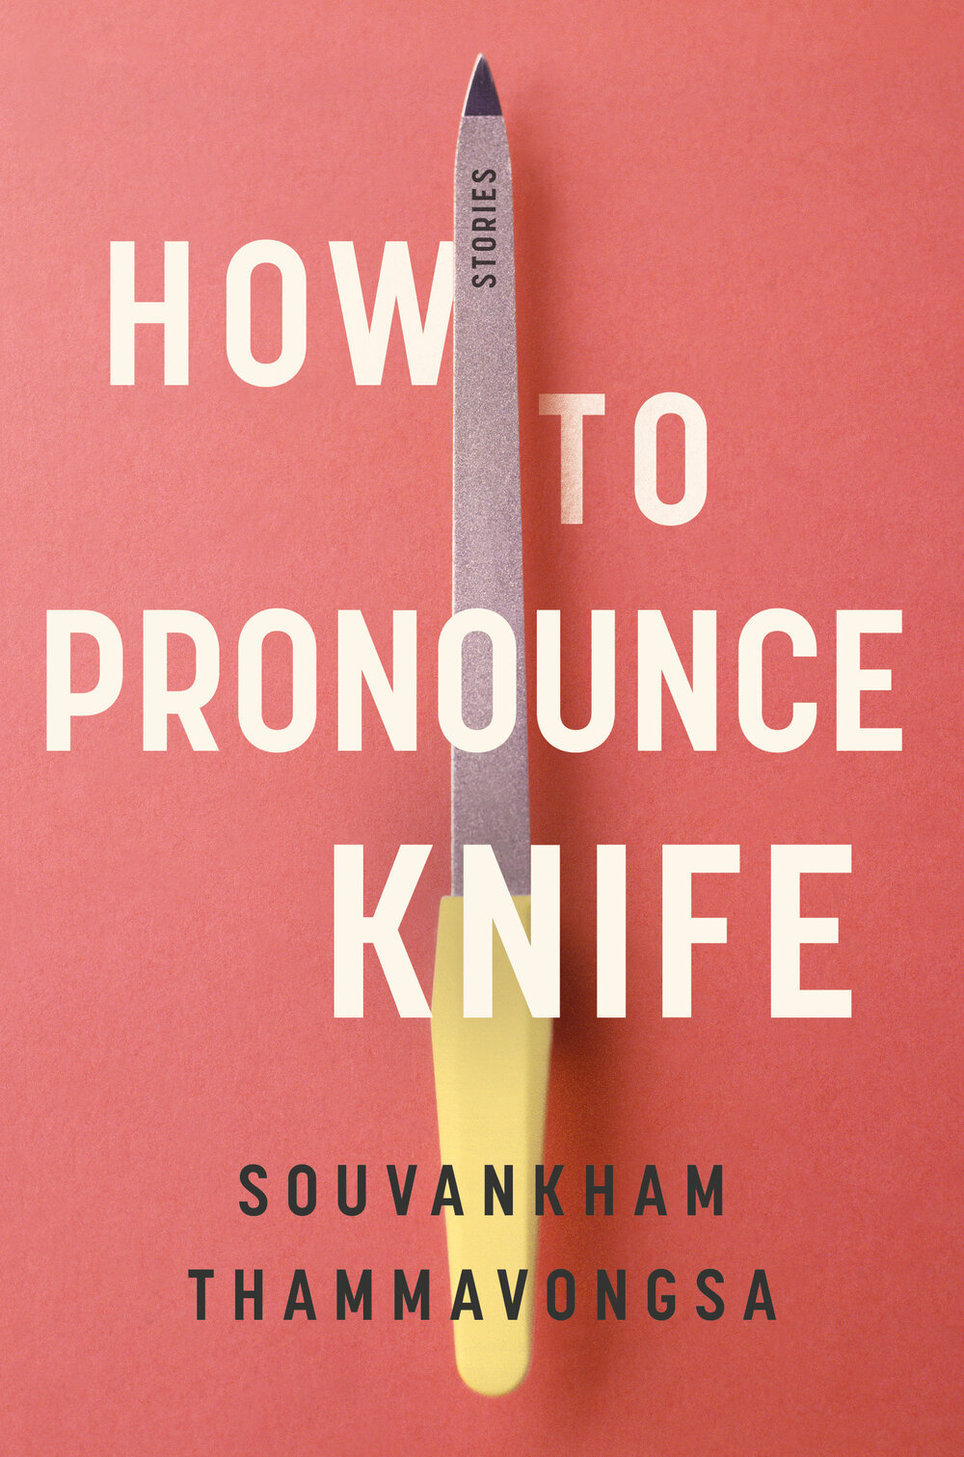 New Reads Book Club - How to Pronounce Knife